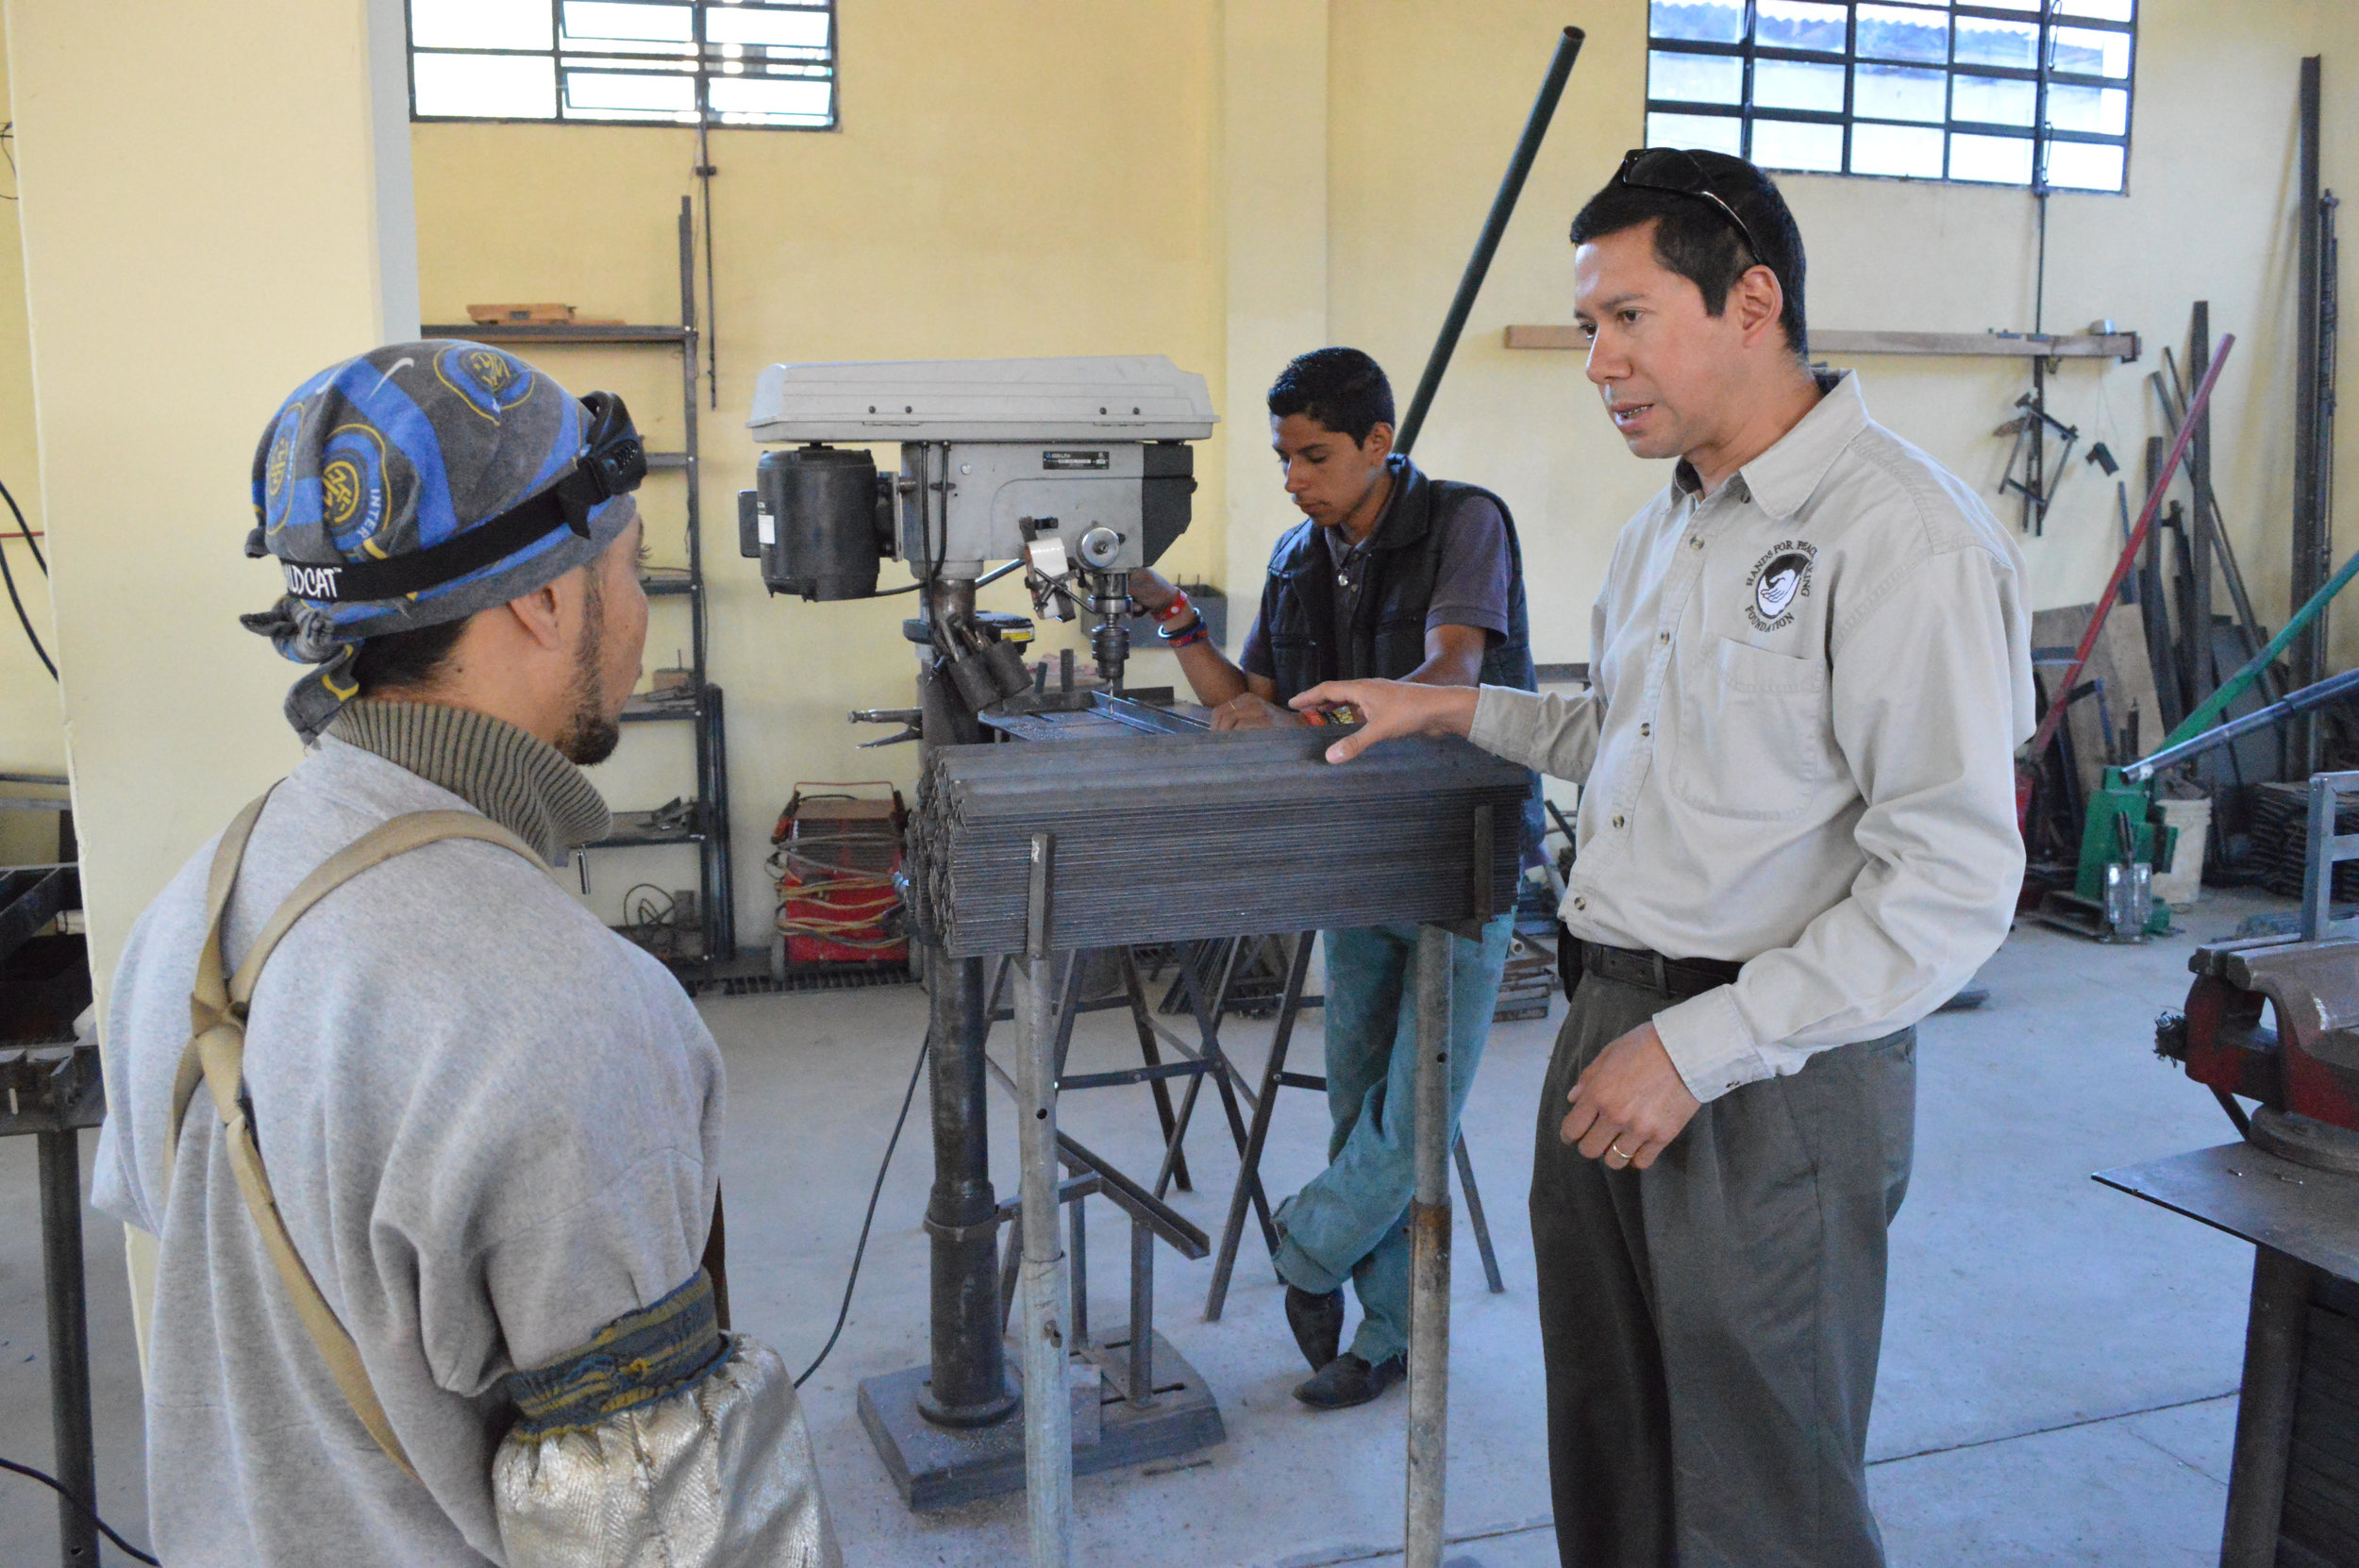 Marco Tulio Maldonado, Guatemala Field Director, talking with a worker at the Aller Skill Center.